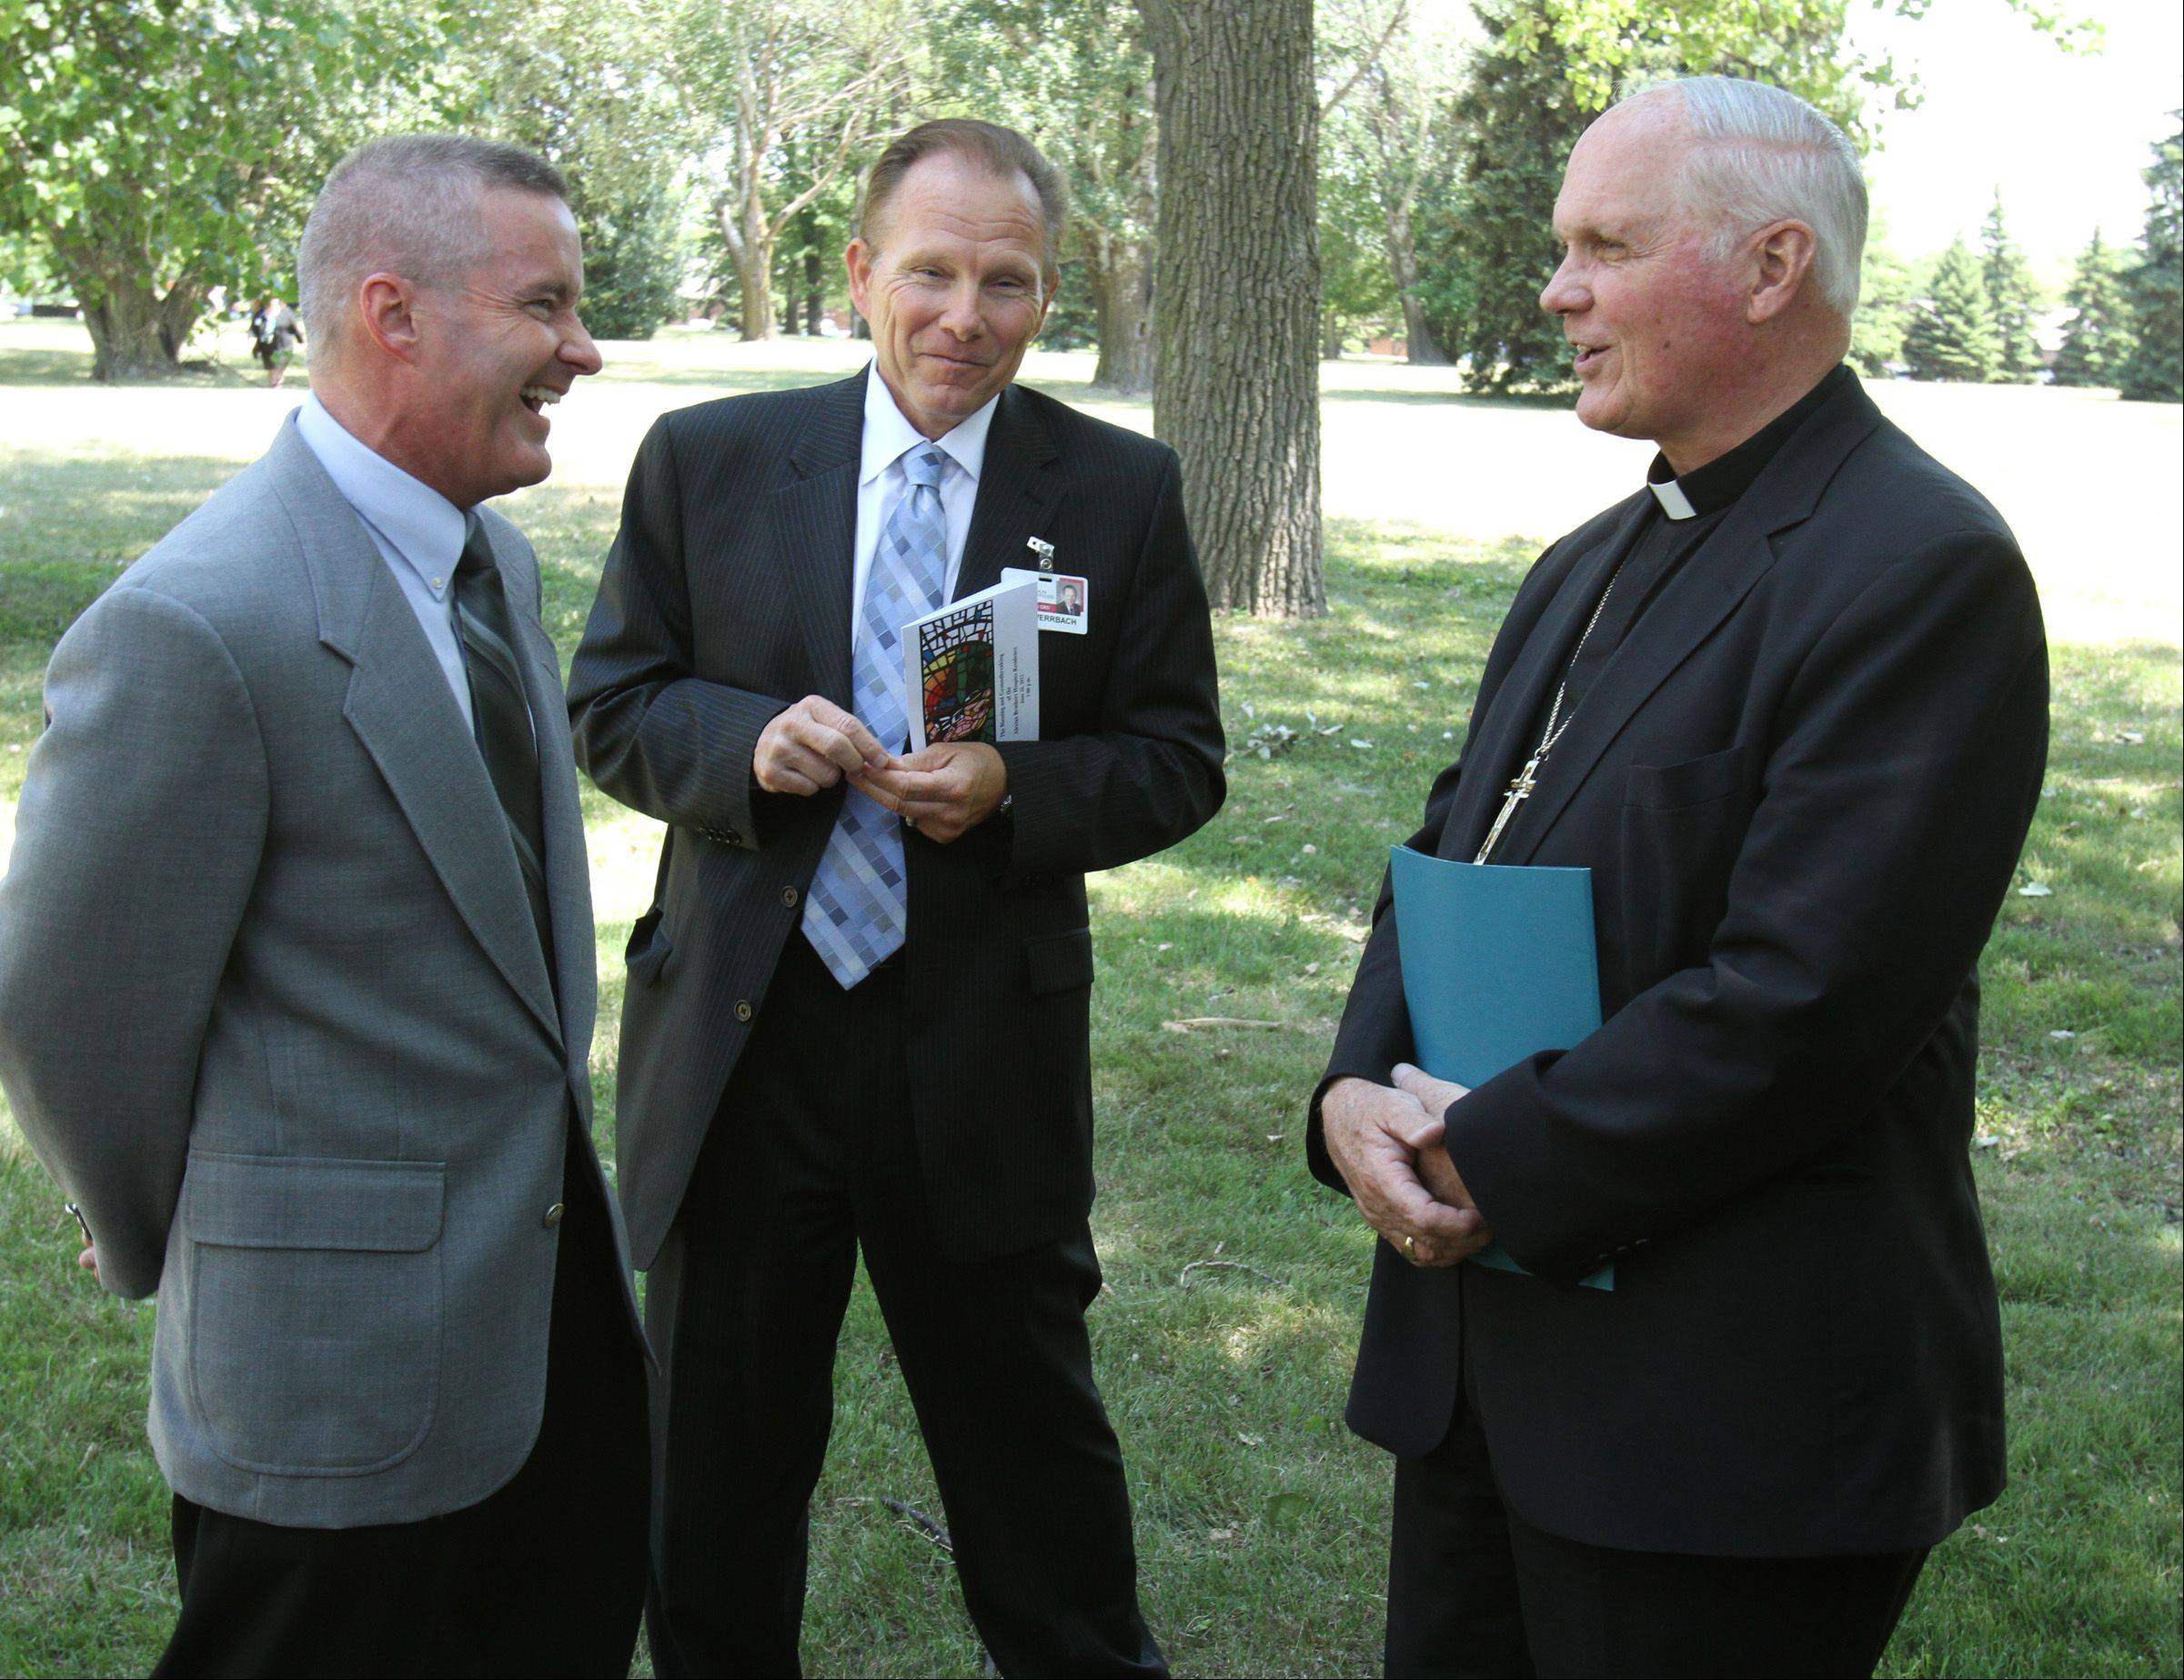 Most Reverend George Rassas Auxiliary Bishop of Chicago, right, has a laugh with Elk Grove Village Mayor Craig Johnson, left, and John Werrbach, president and CEO of Alexian Brothers Medical Center at Alexian Brothers Health System groundbreaking for a $7.5 million free-standing hospice residence in Elk Grove Village on Tuesday.